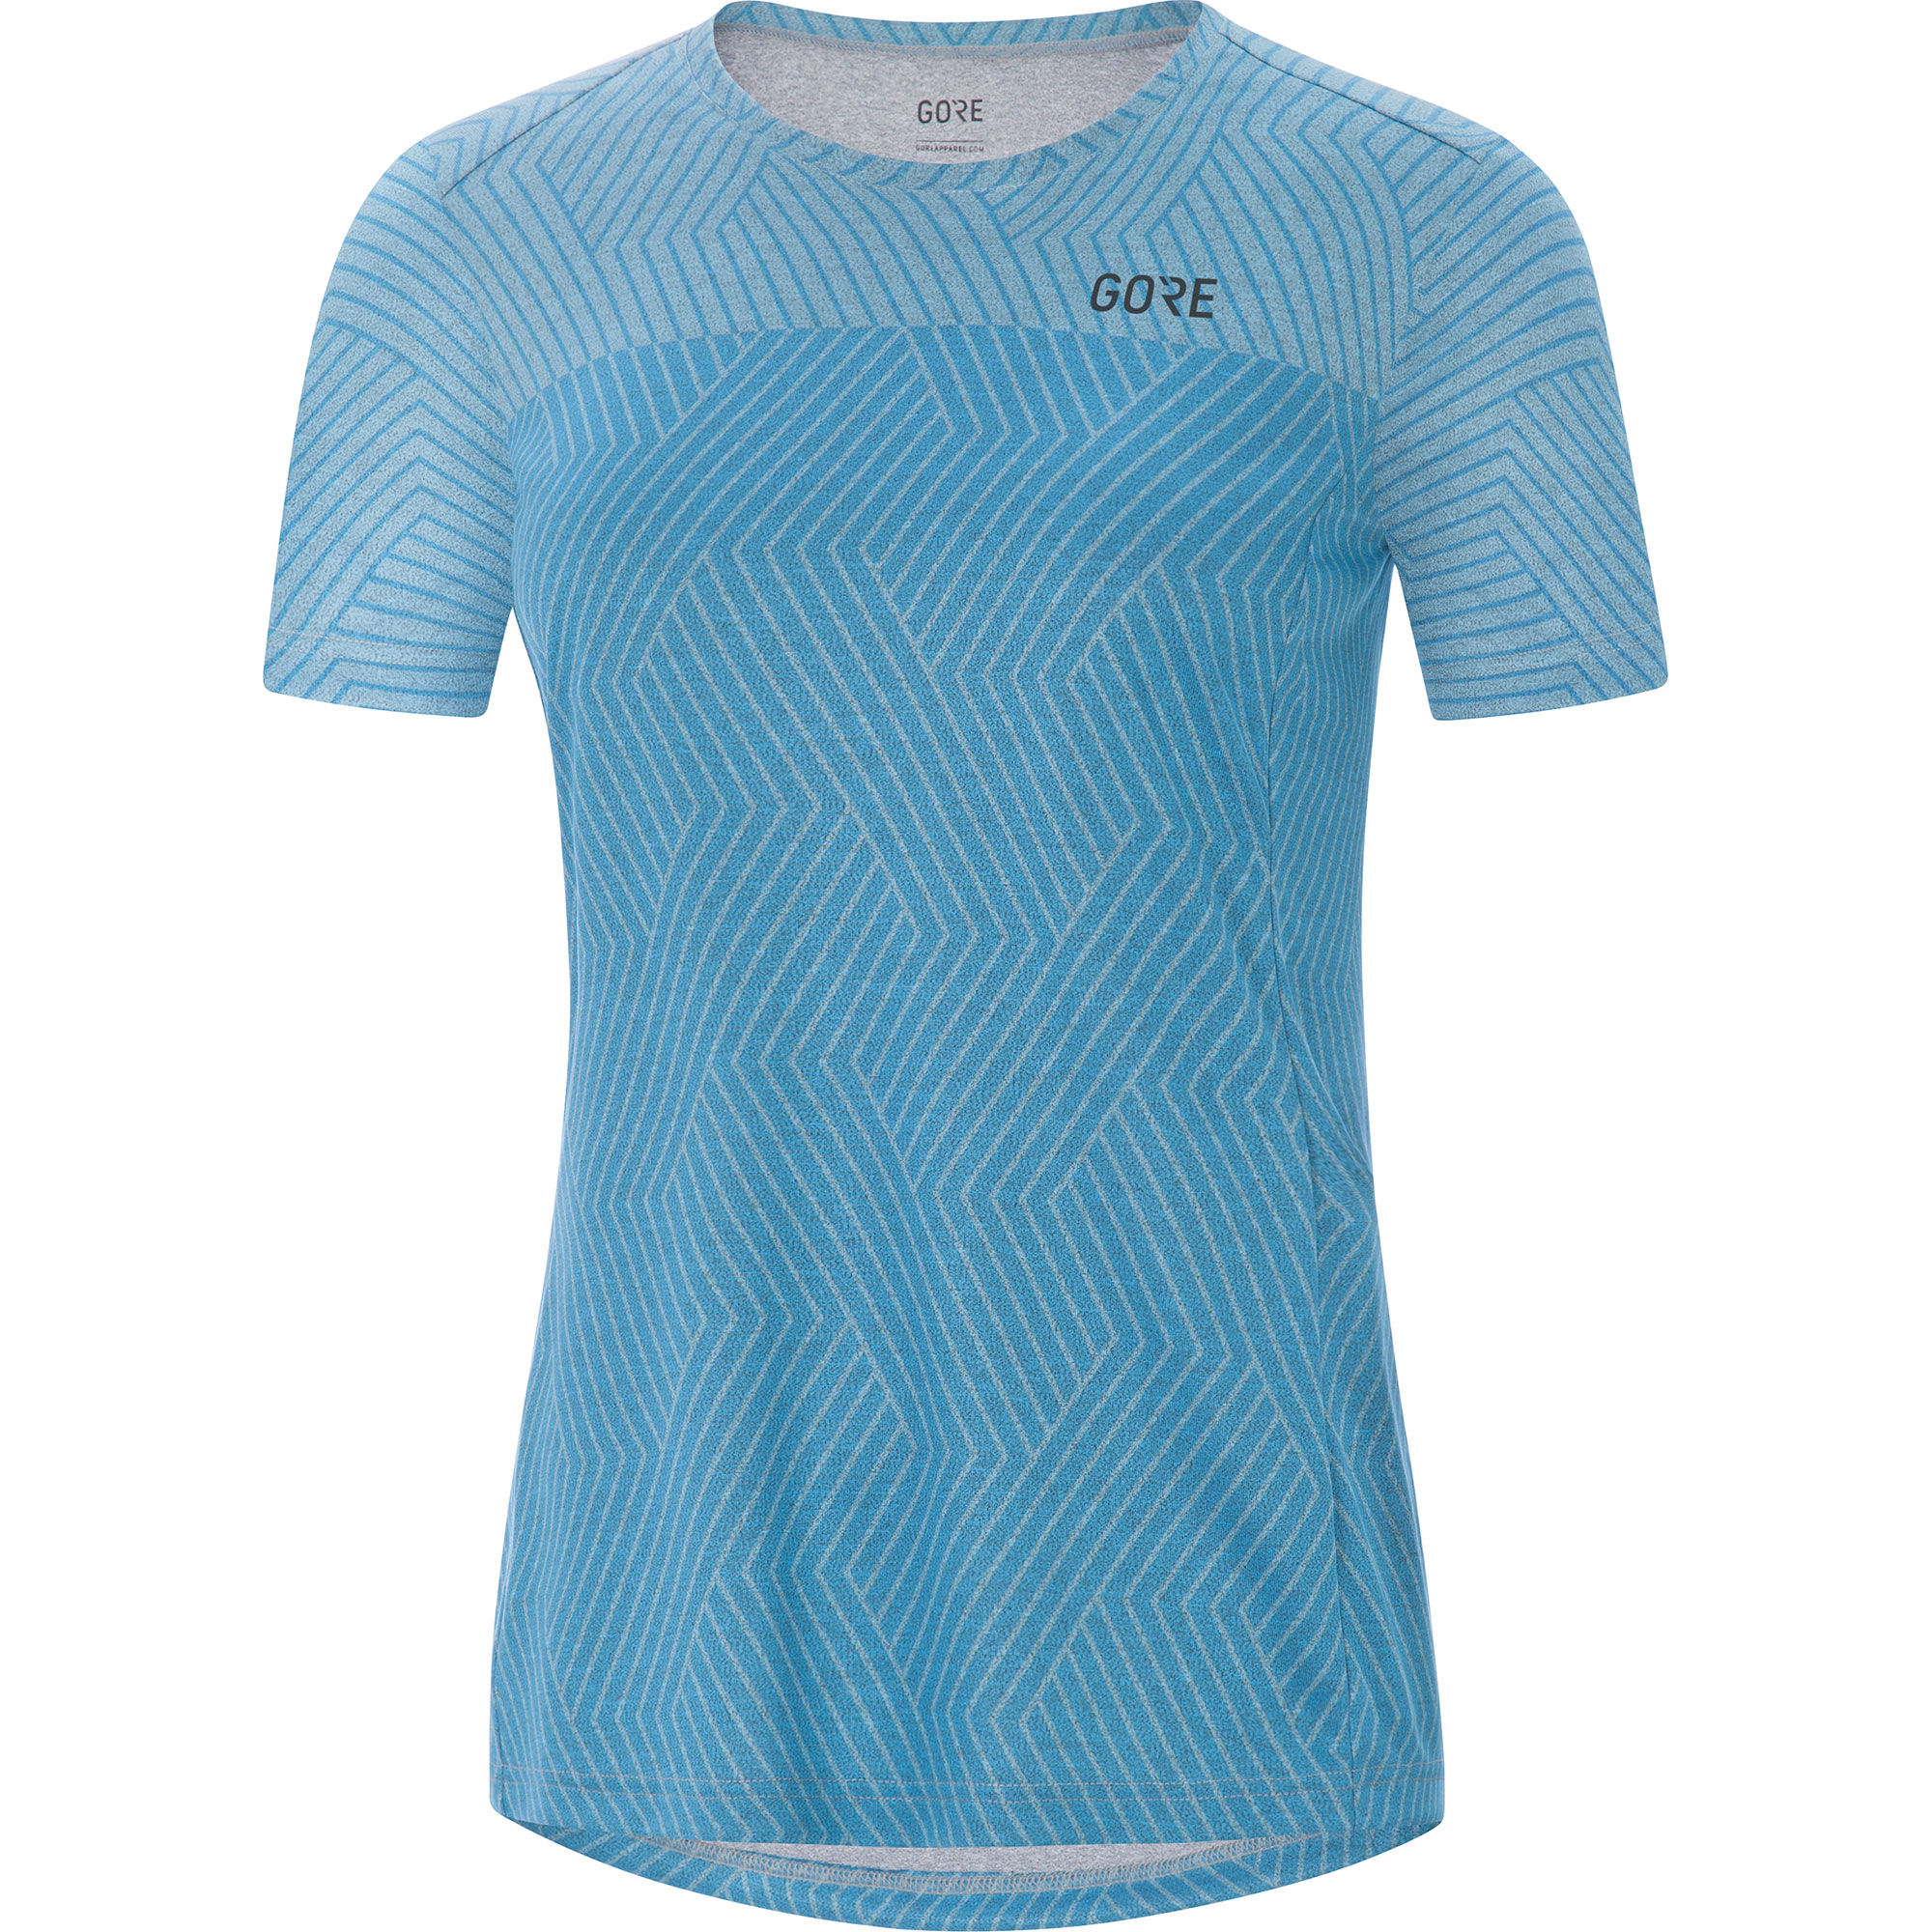 Gore R3 Lady Optiline Shirt (Blau)